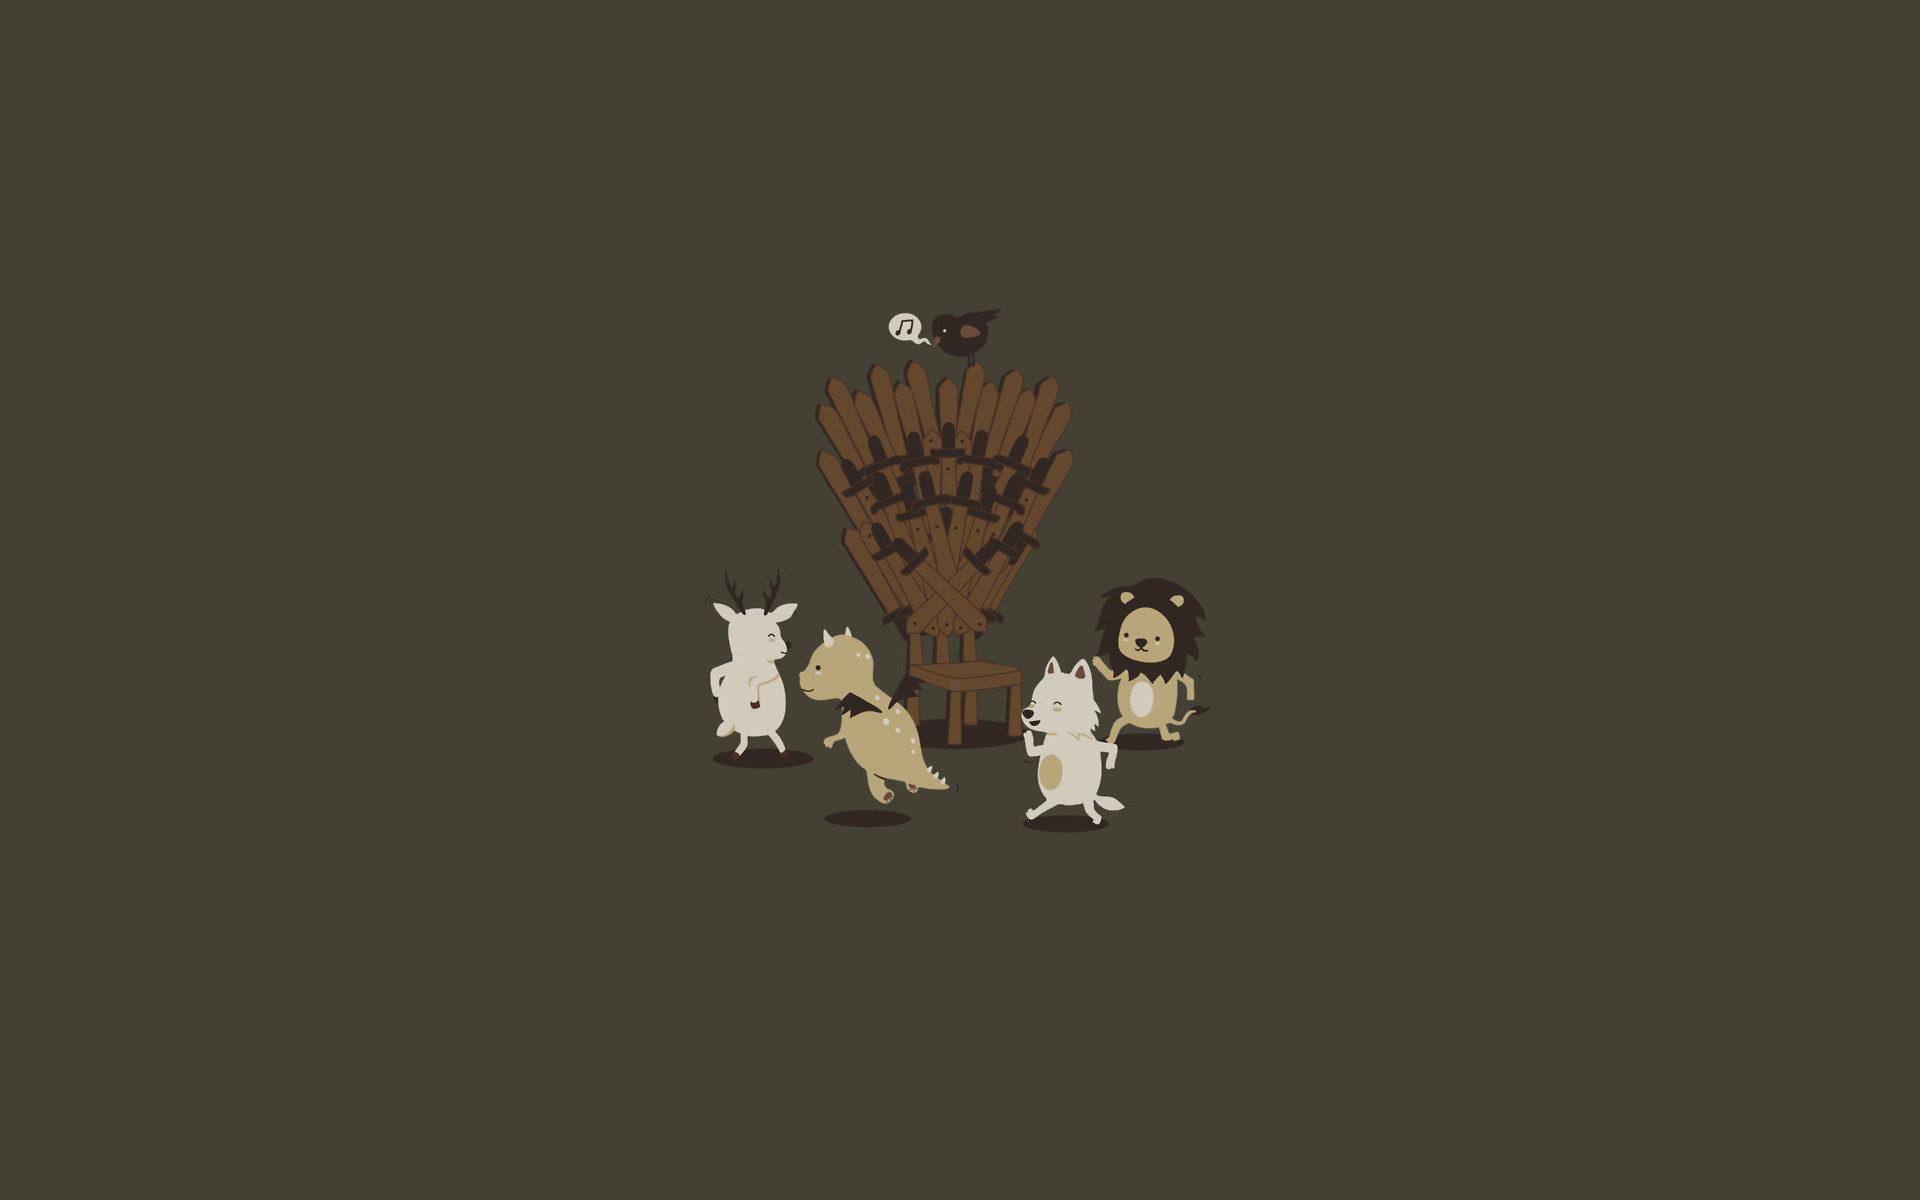 1920x1200 Funny Game Of Thrones HBO TV Series ...